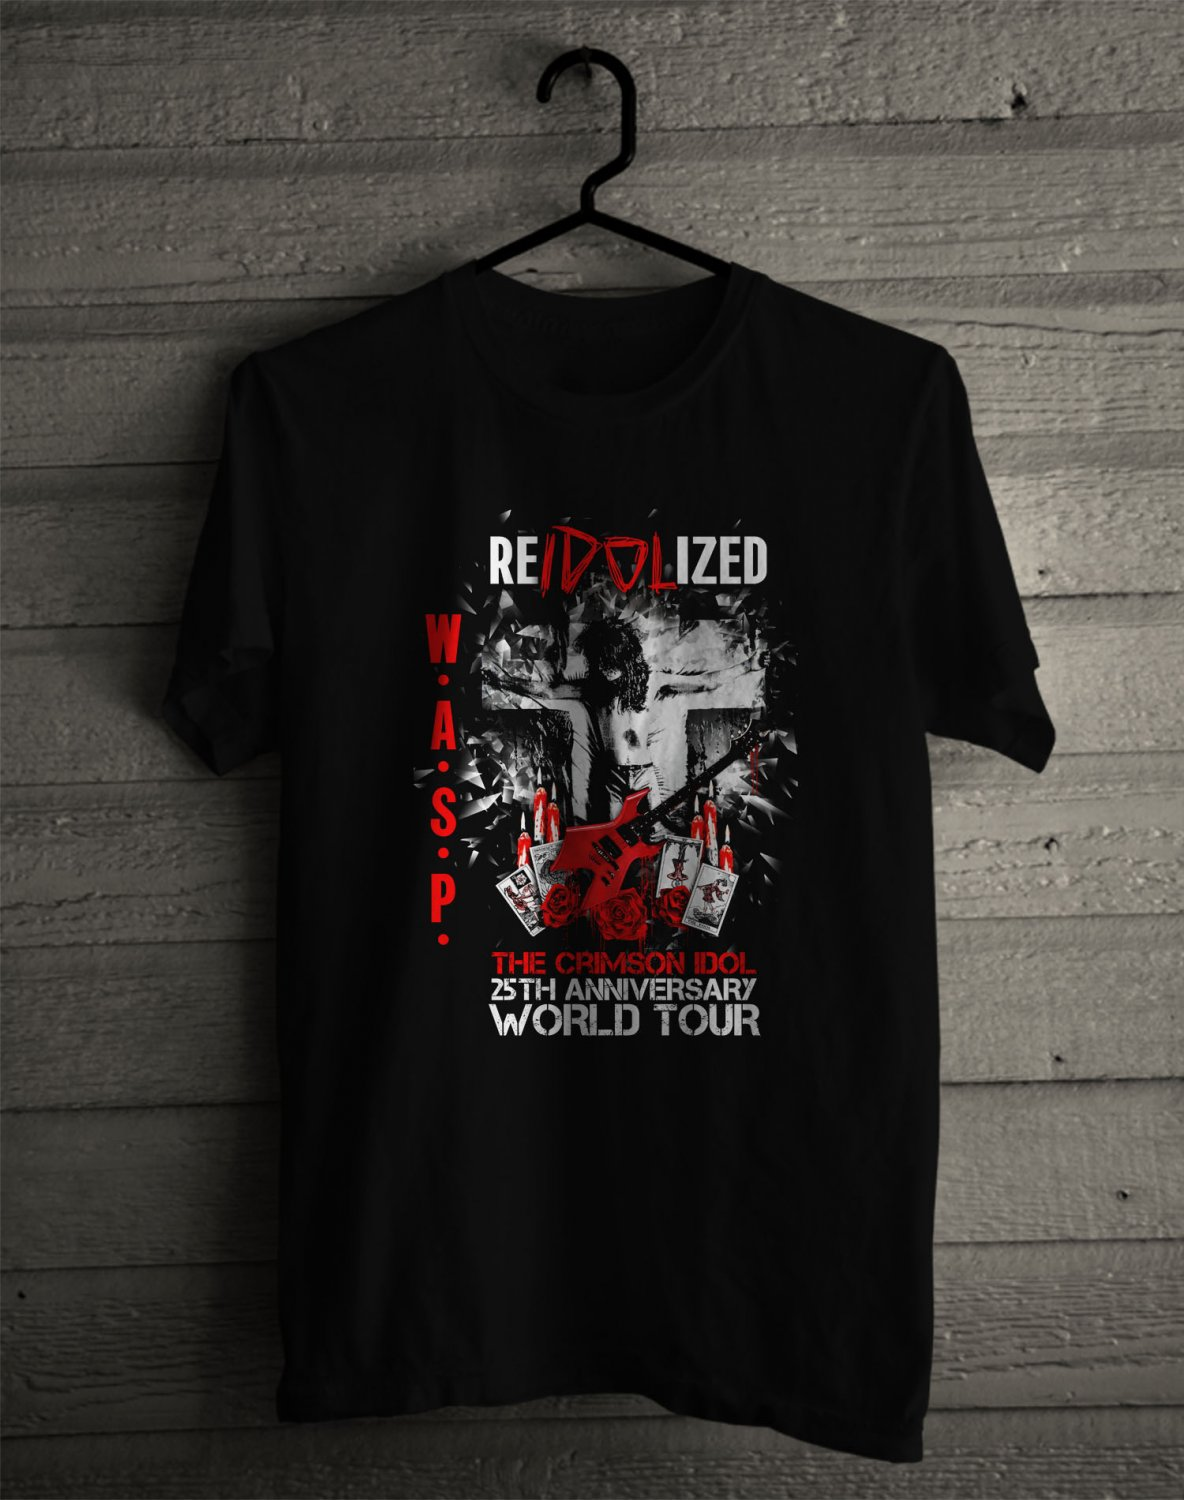 W.A.S.P reIDOLIzed 25th Anniv Tour 2017 White Tee's Front Side by Complexart